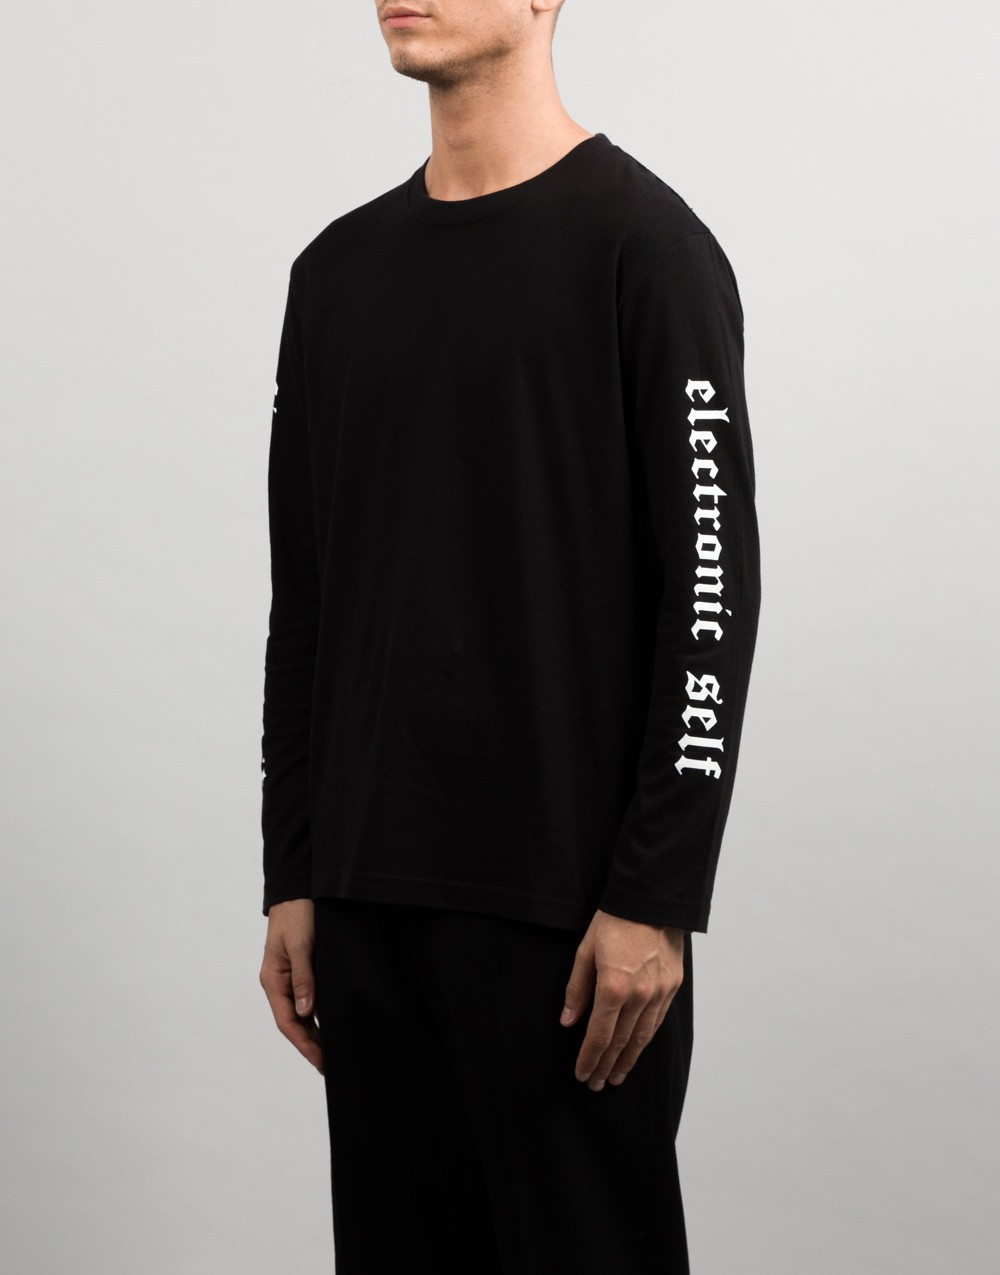 FoA. Electronic Self Long-sleeve